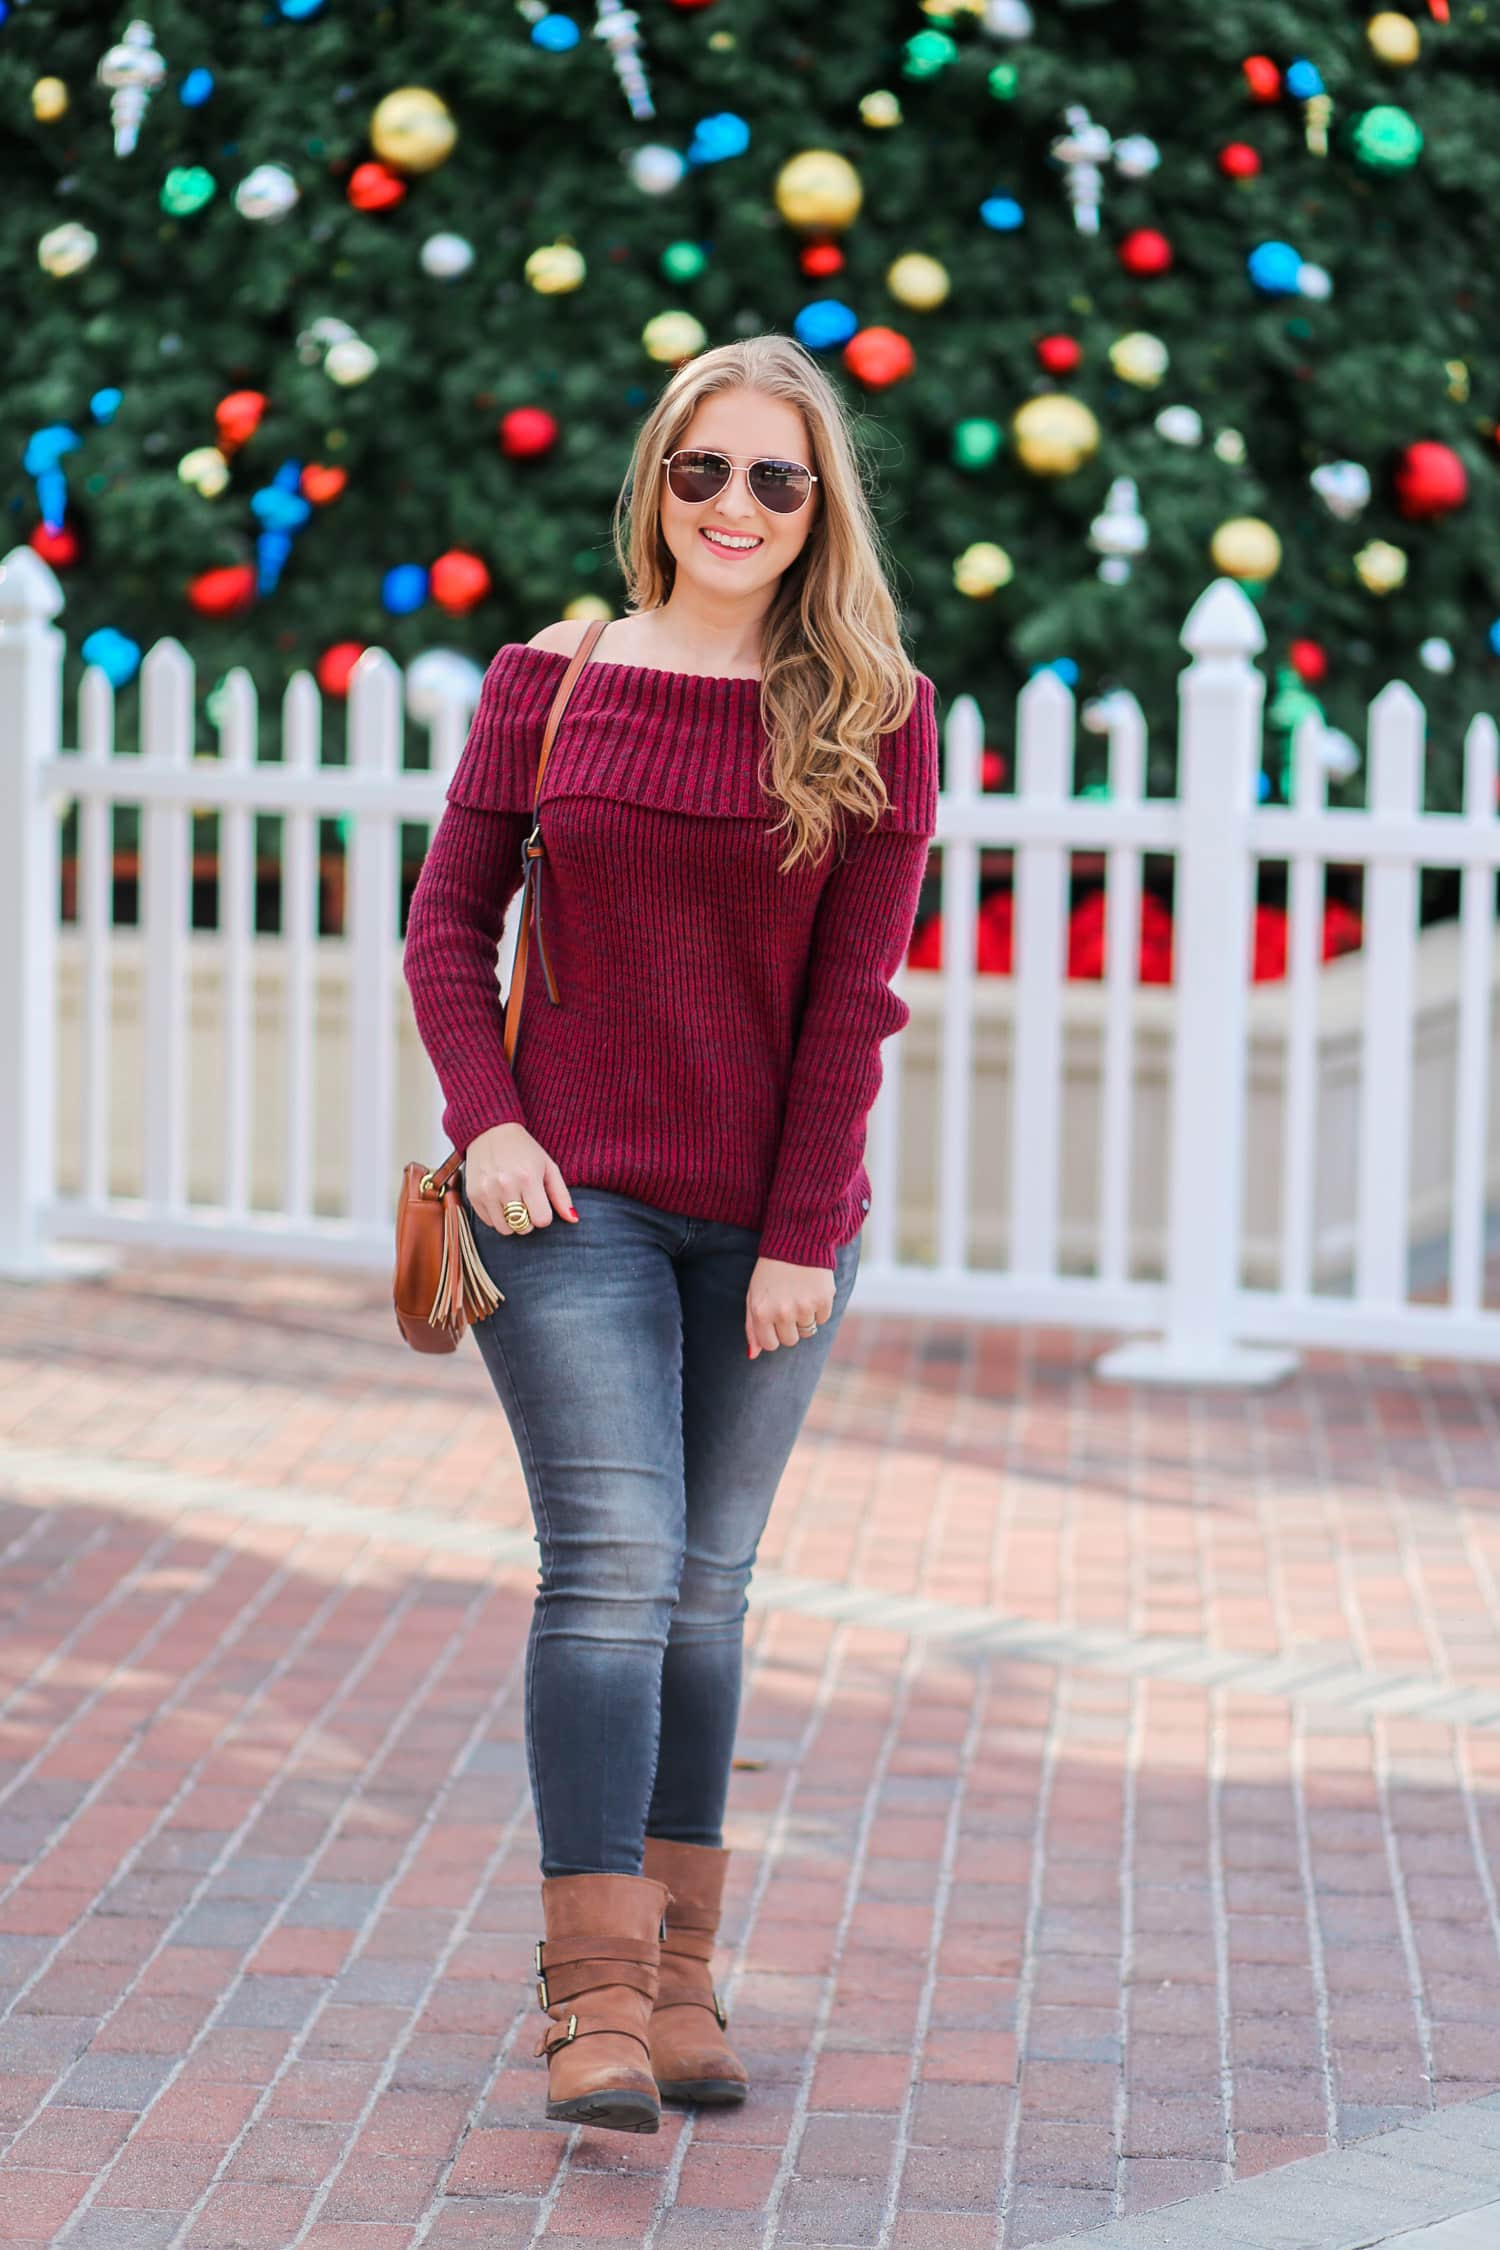 Casual Winter Outfit Foster Grant Orlando Store Opening